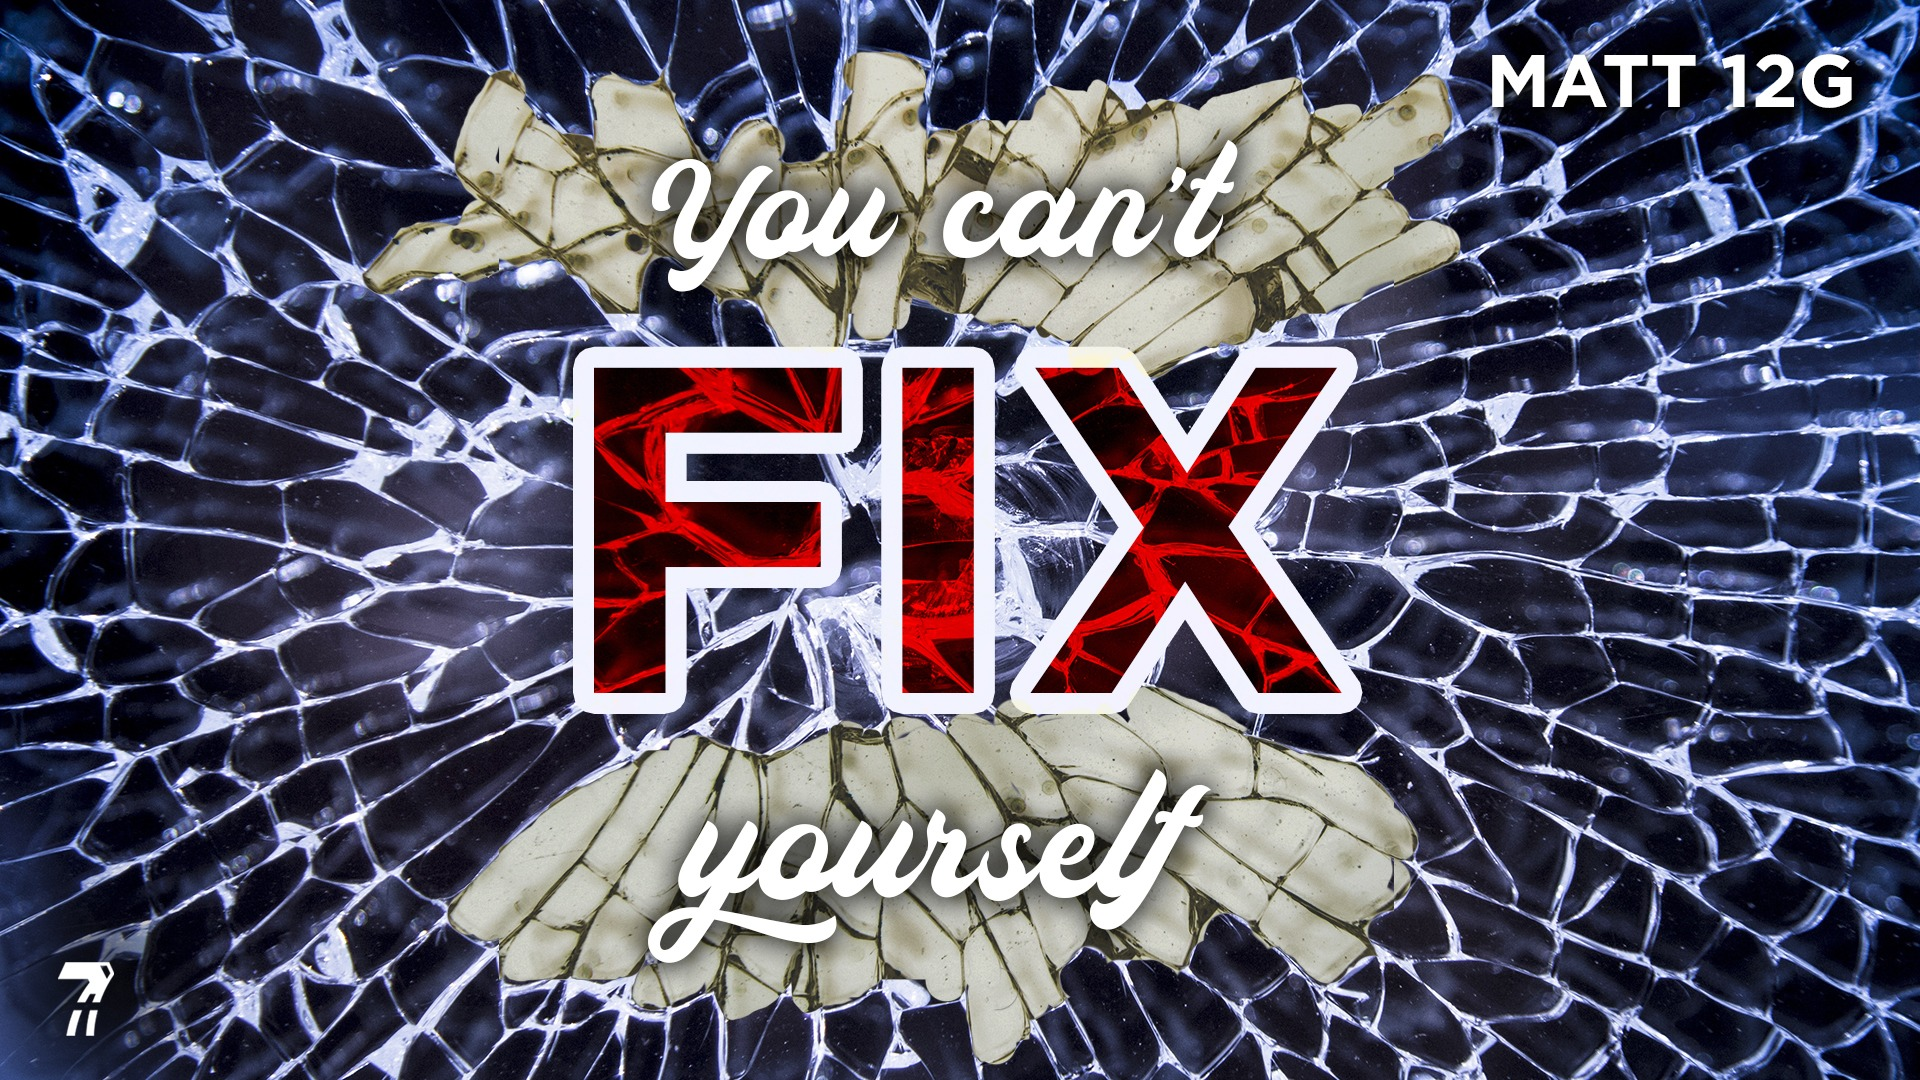 Matthew 12g – You Can't Fix Yourself